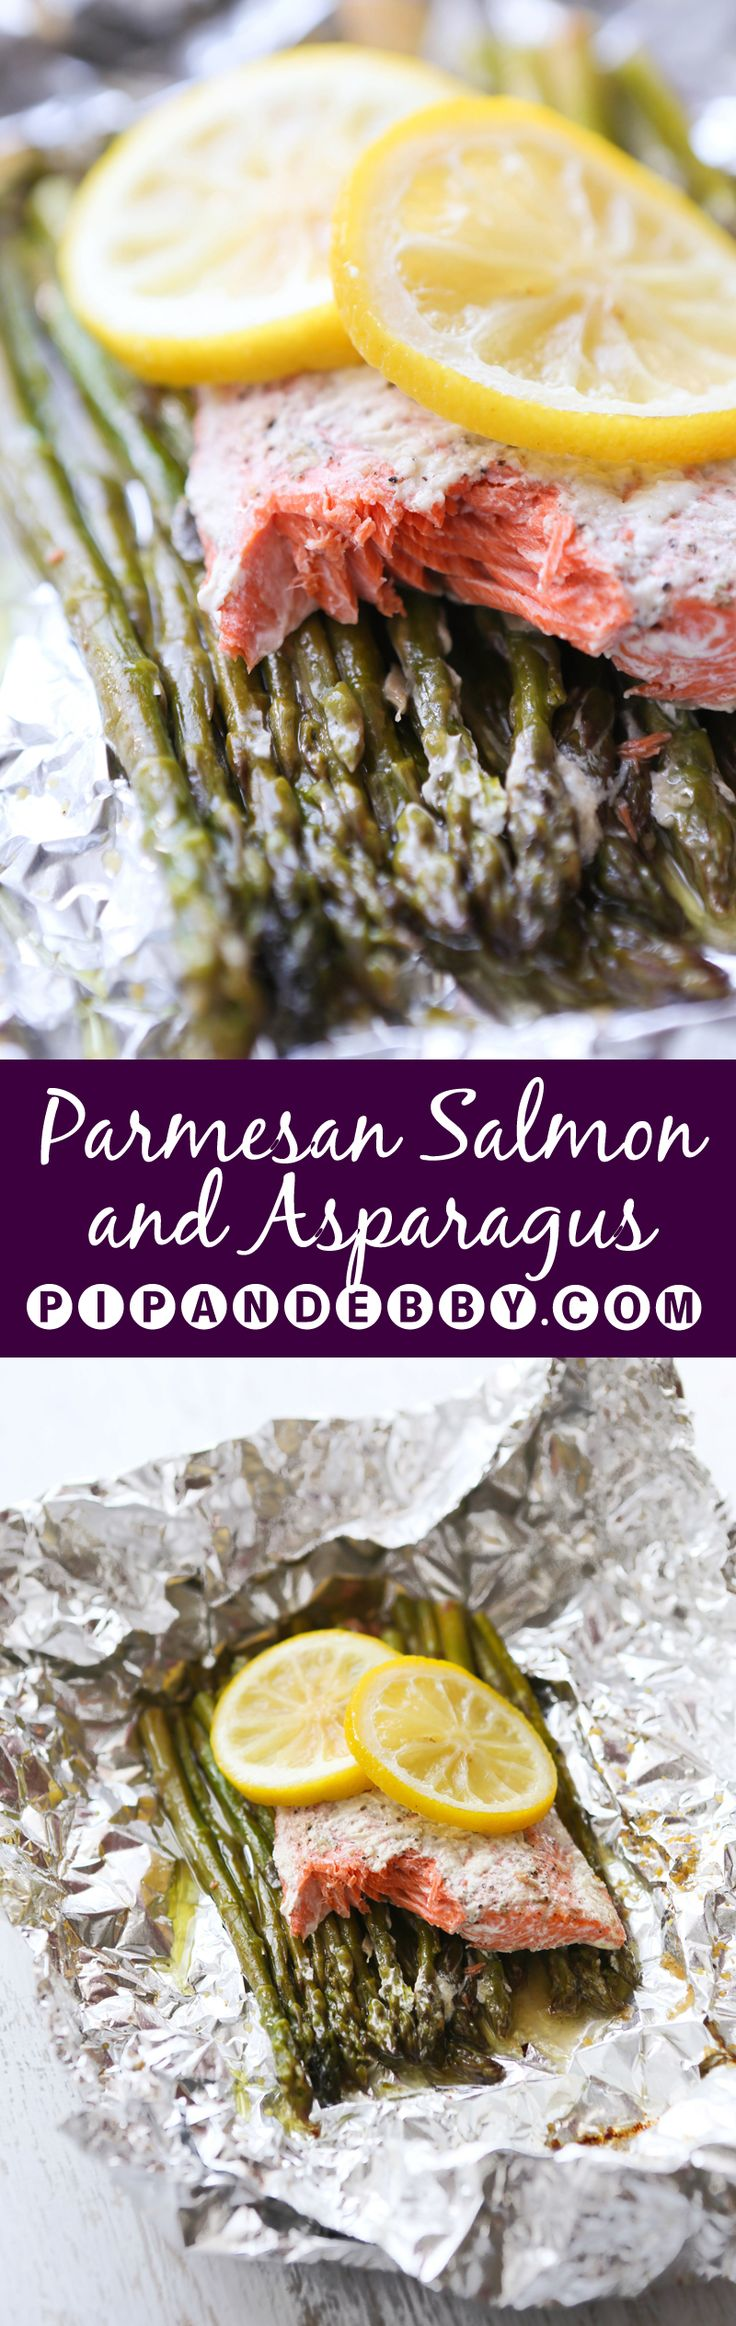 Parmesan Salmon and Asparagus in Foil | Dinner does not get any easier than this! Throw a slab of salmon on top of some asparagus and wrap it in foil!